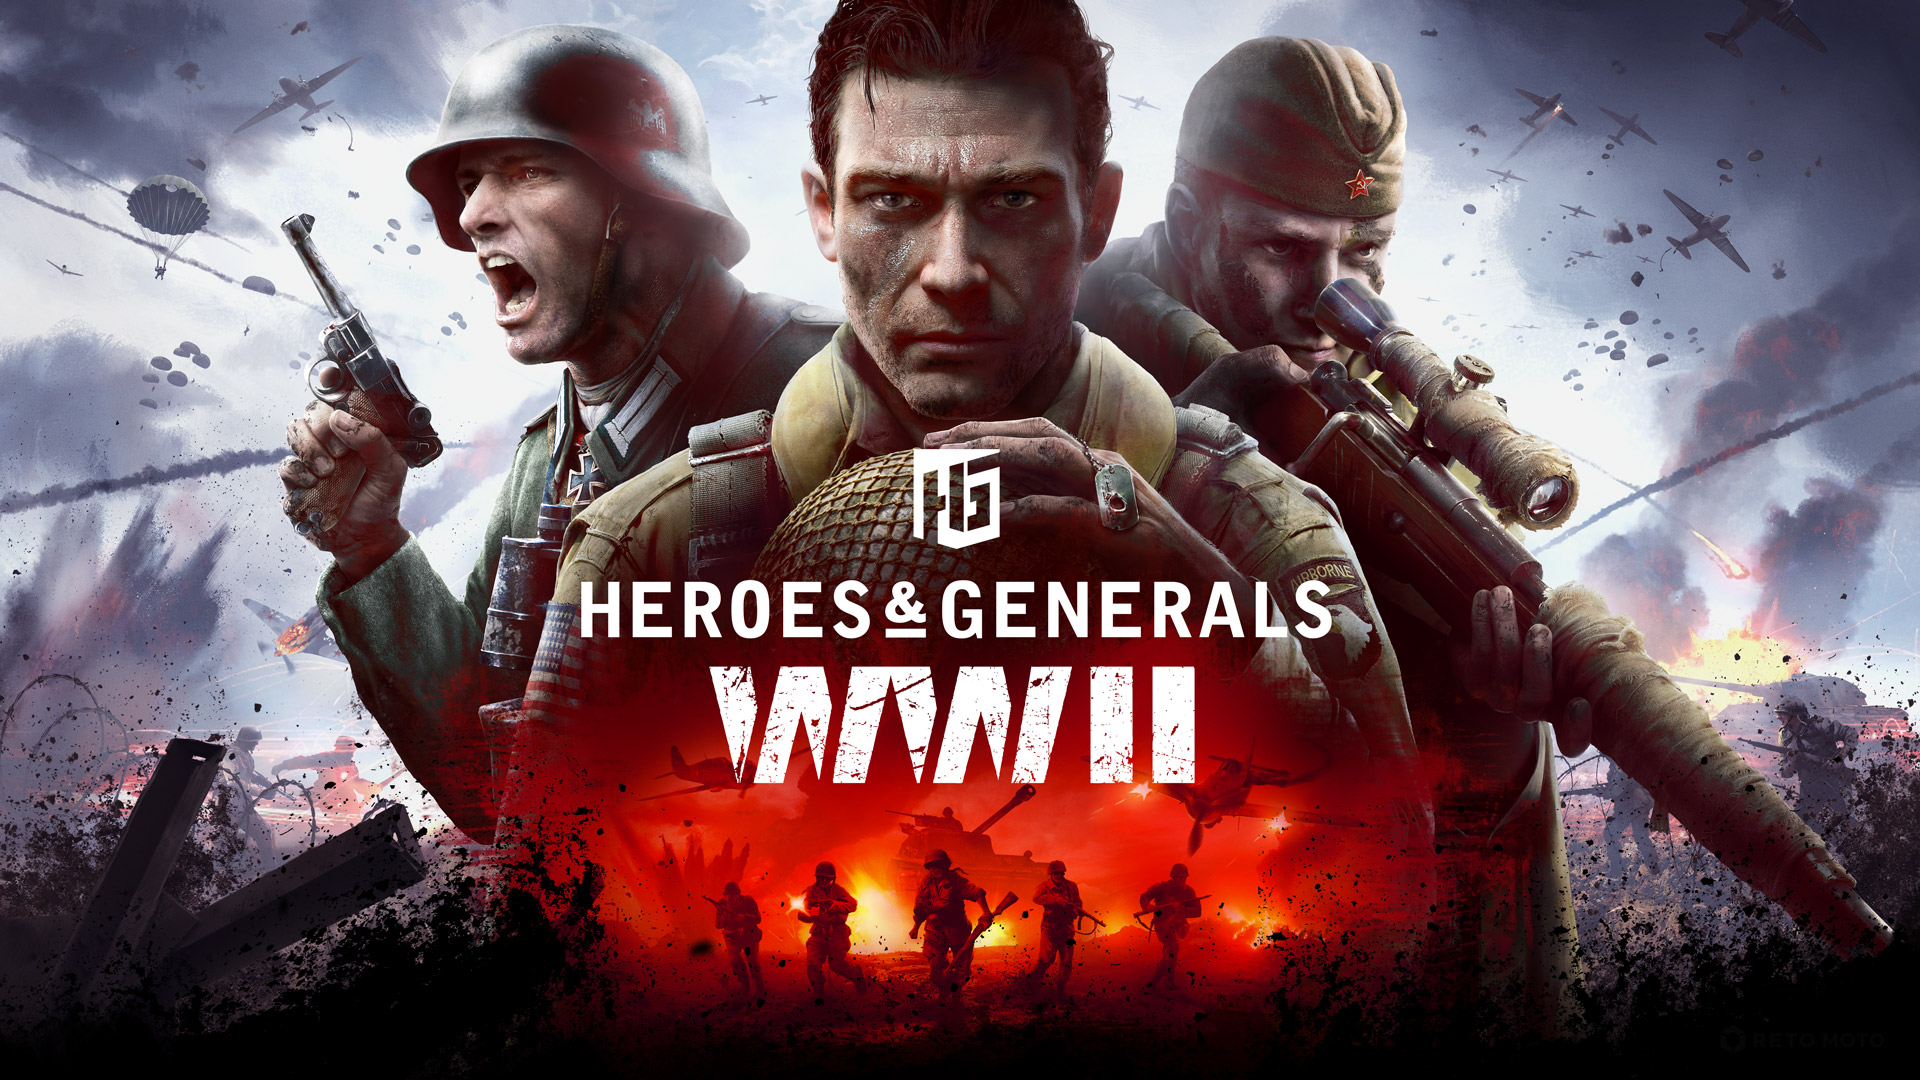 Wallpapers   Heroes Generals 1920x1080